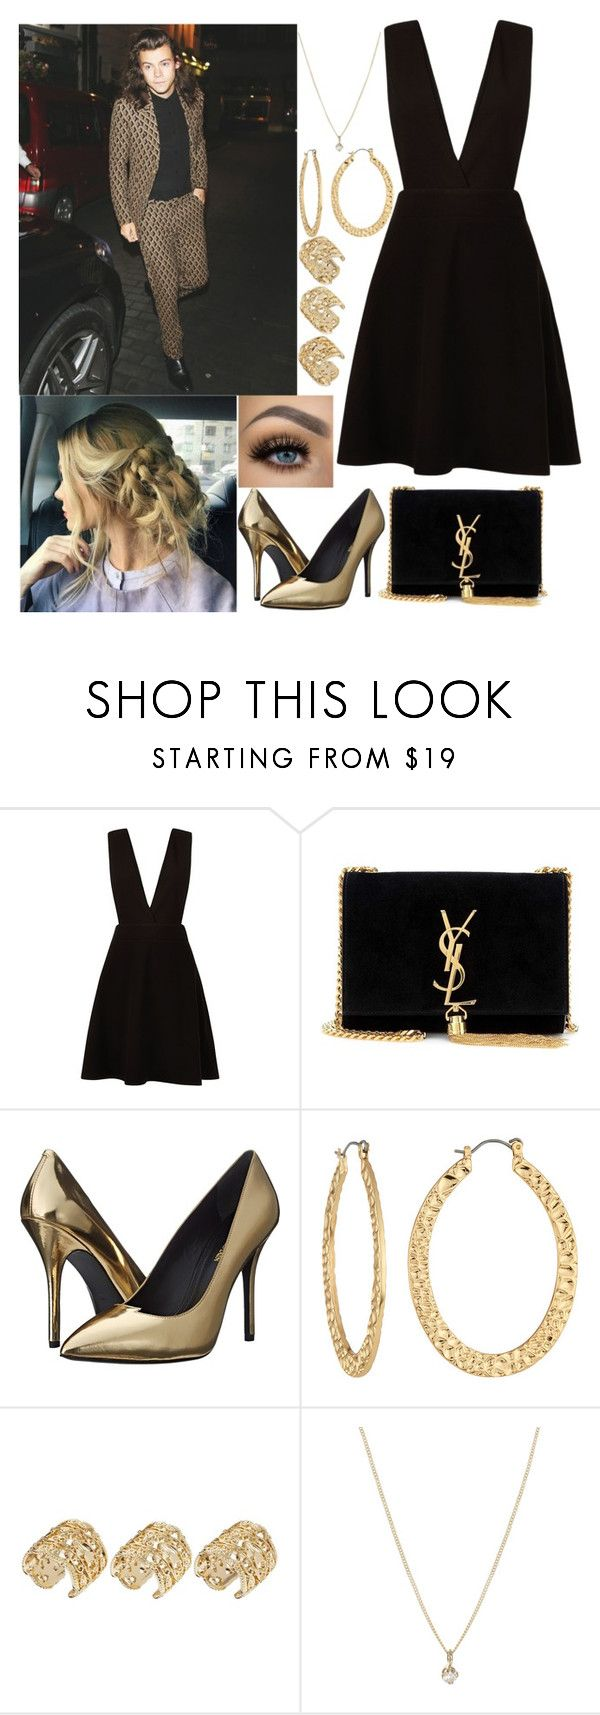 """Party with Harry"" by kennedey-lynn-freeman ❤ liked on Polyvore featuring New Look, Yves Saint Laurent, Urban Decay, Pierre Balmain, Fragments, ASOS and Laura Lee Jewellery"